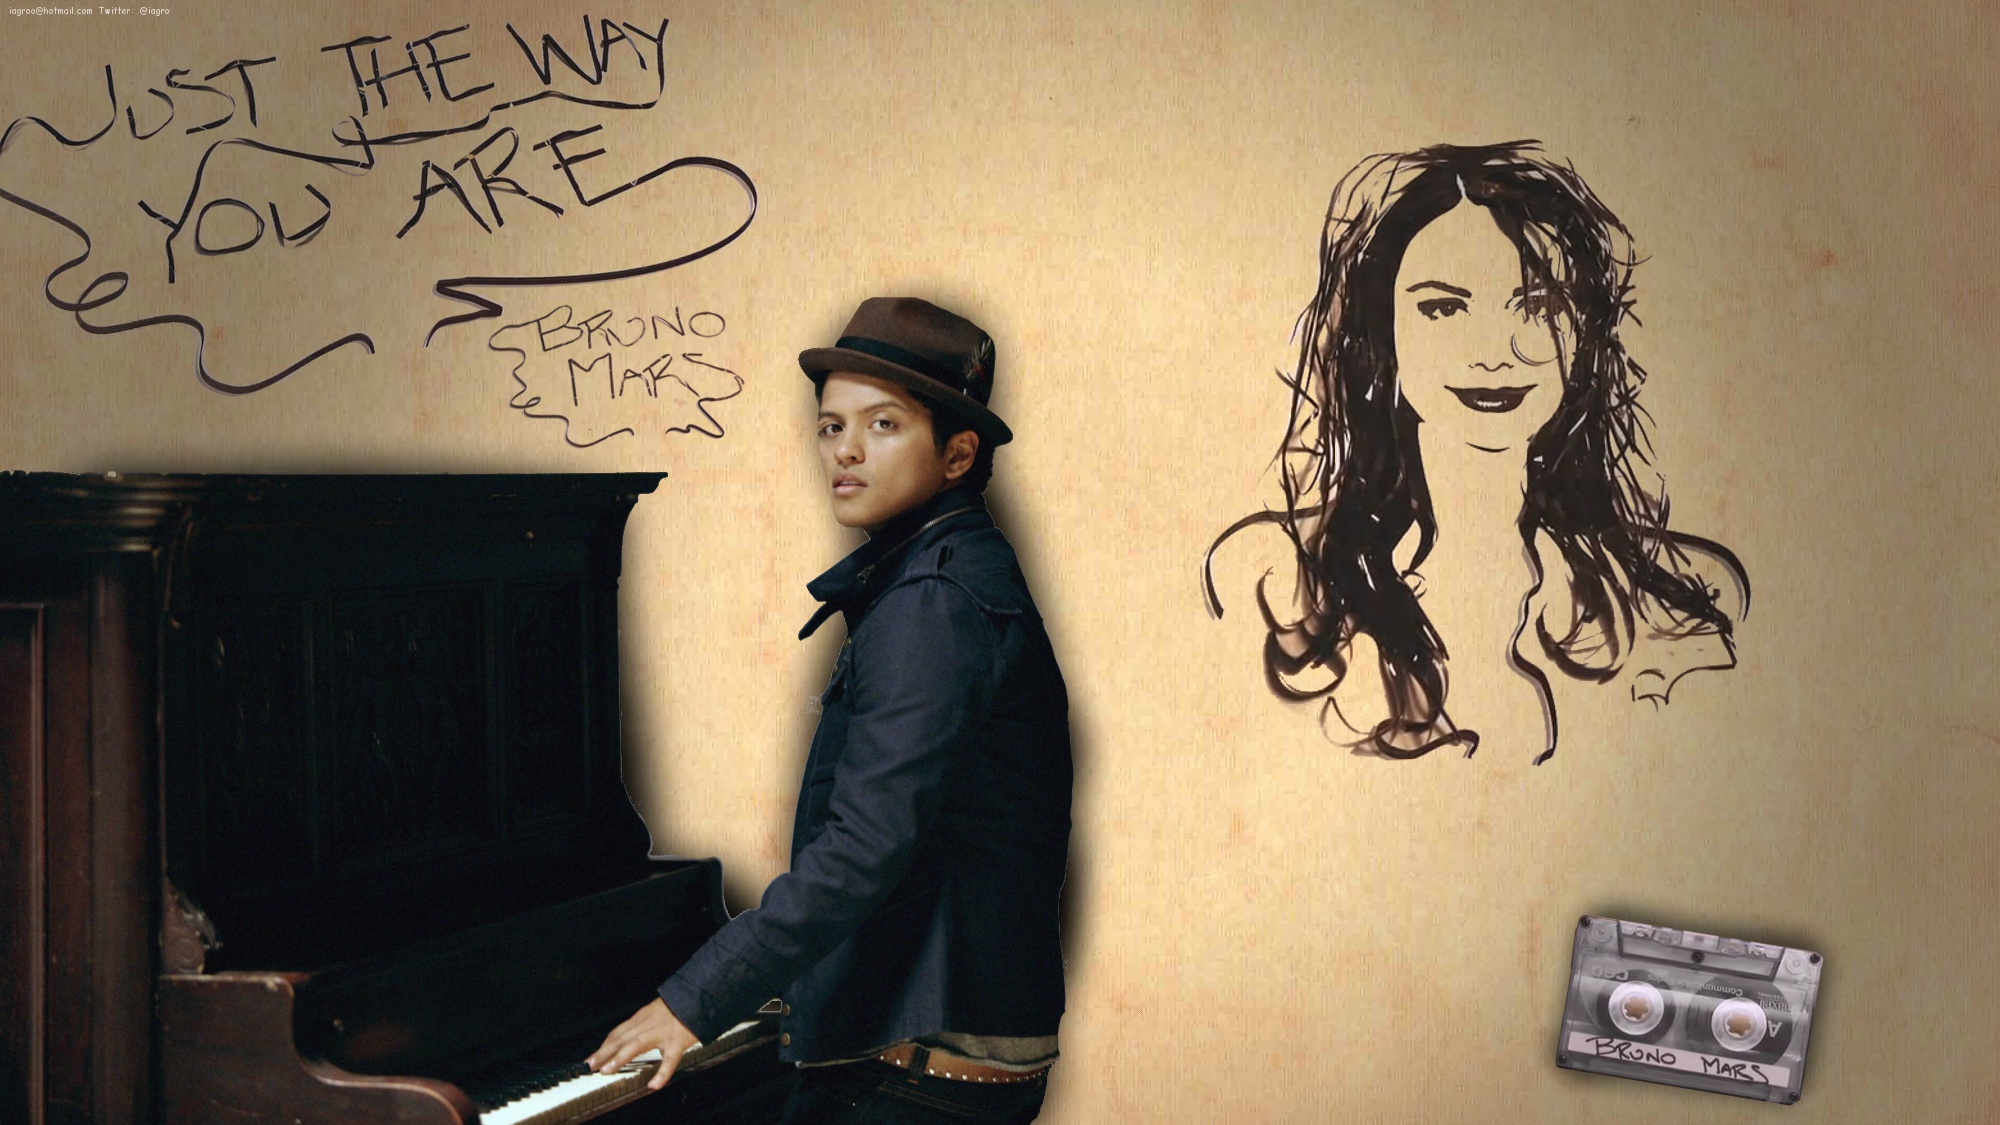 Bruno Mars Wallpaper - @iagro - Bruno Mars Wallpaper ...